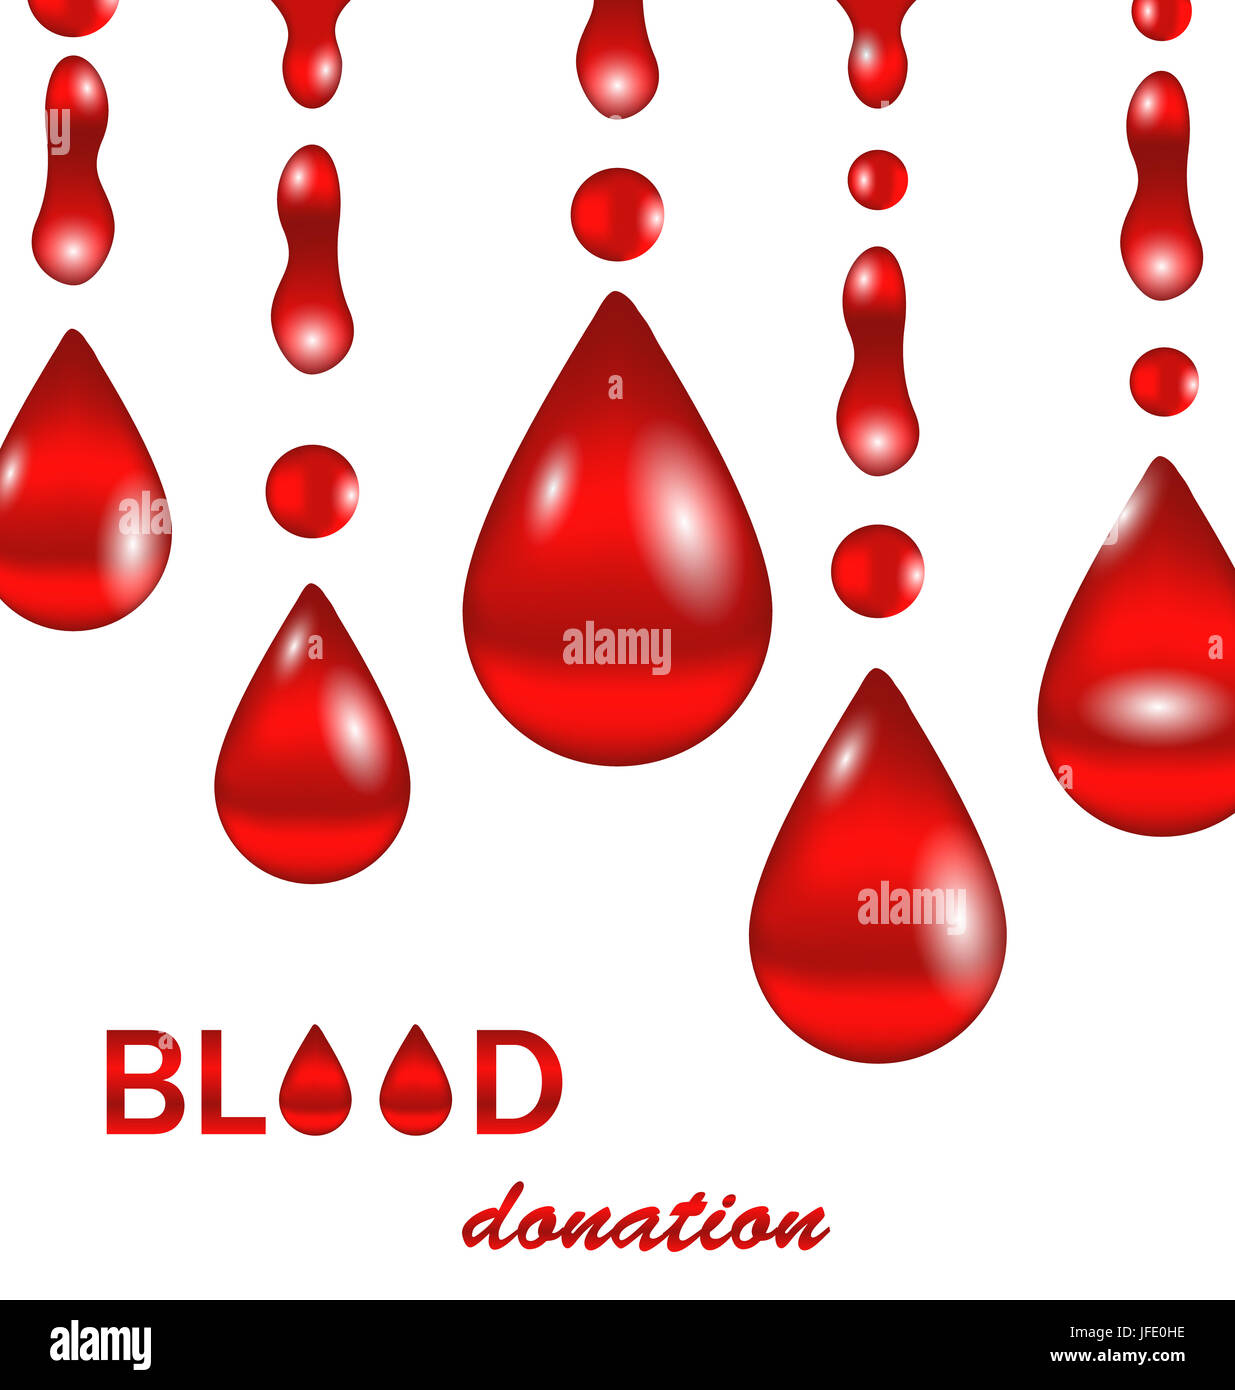 Blood Donation Poster Photos Blood Donation Poster Images Alamy